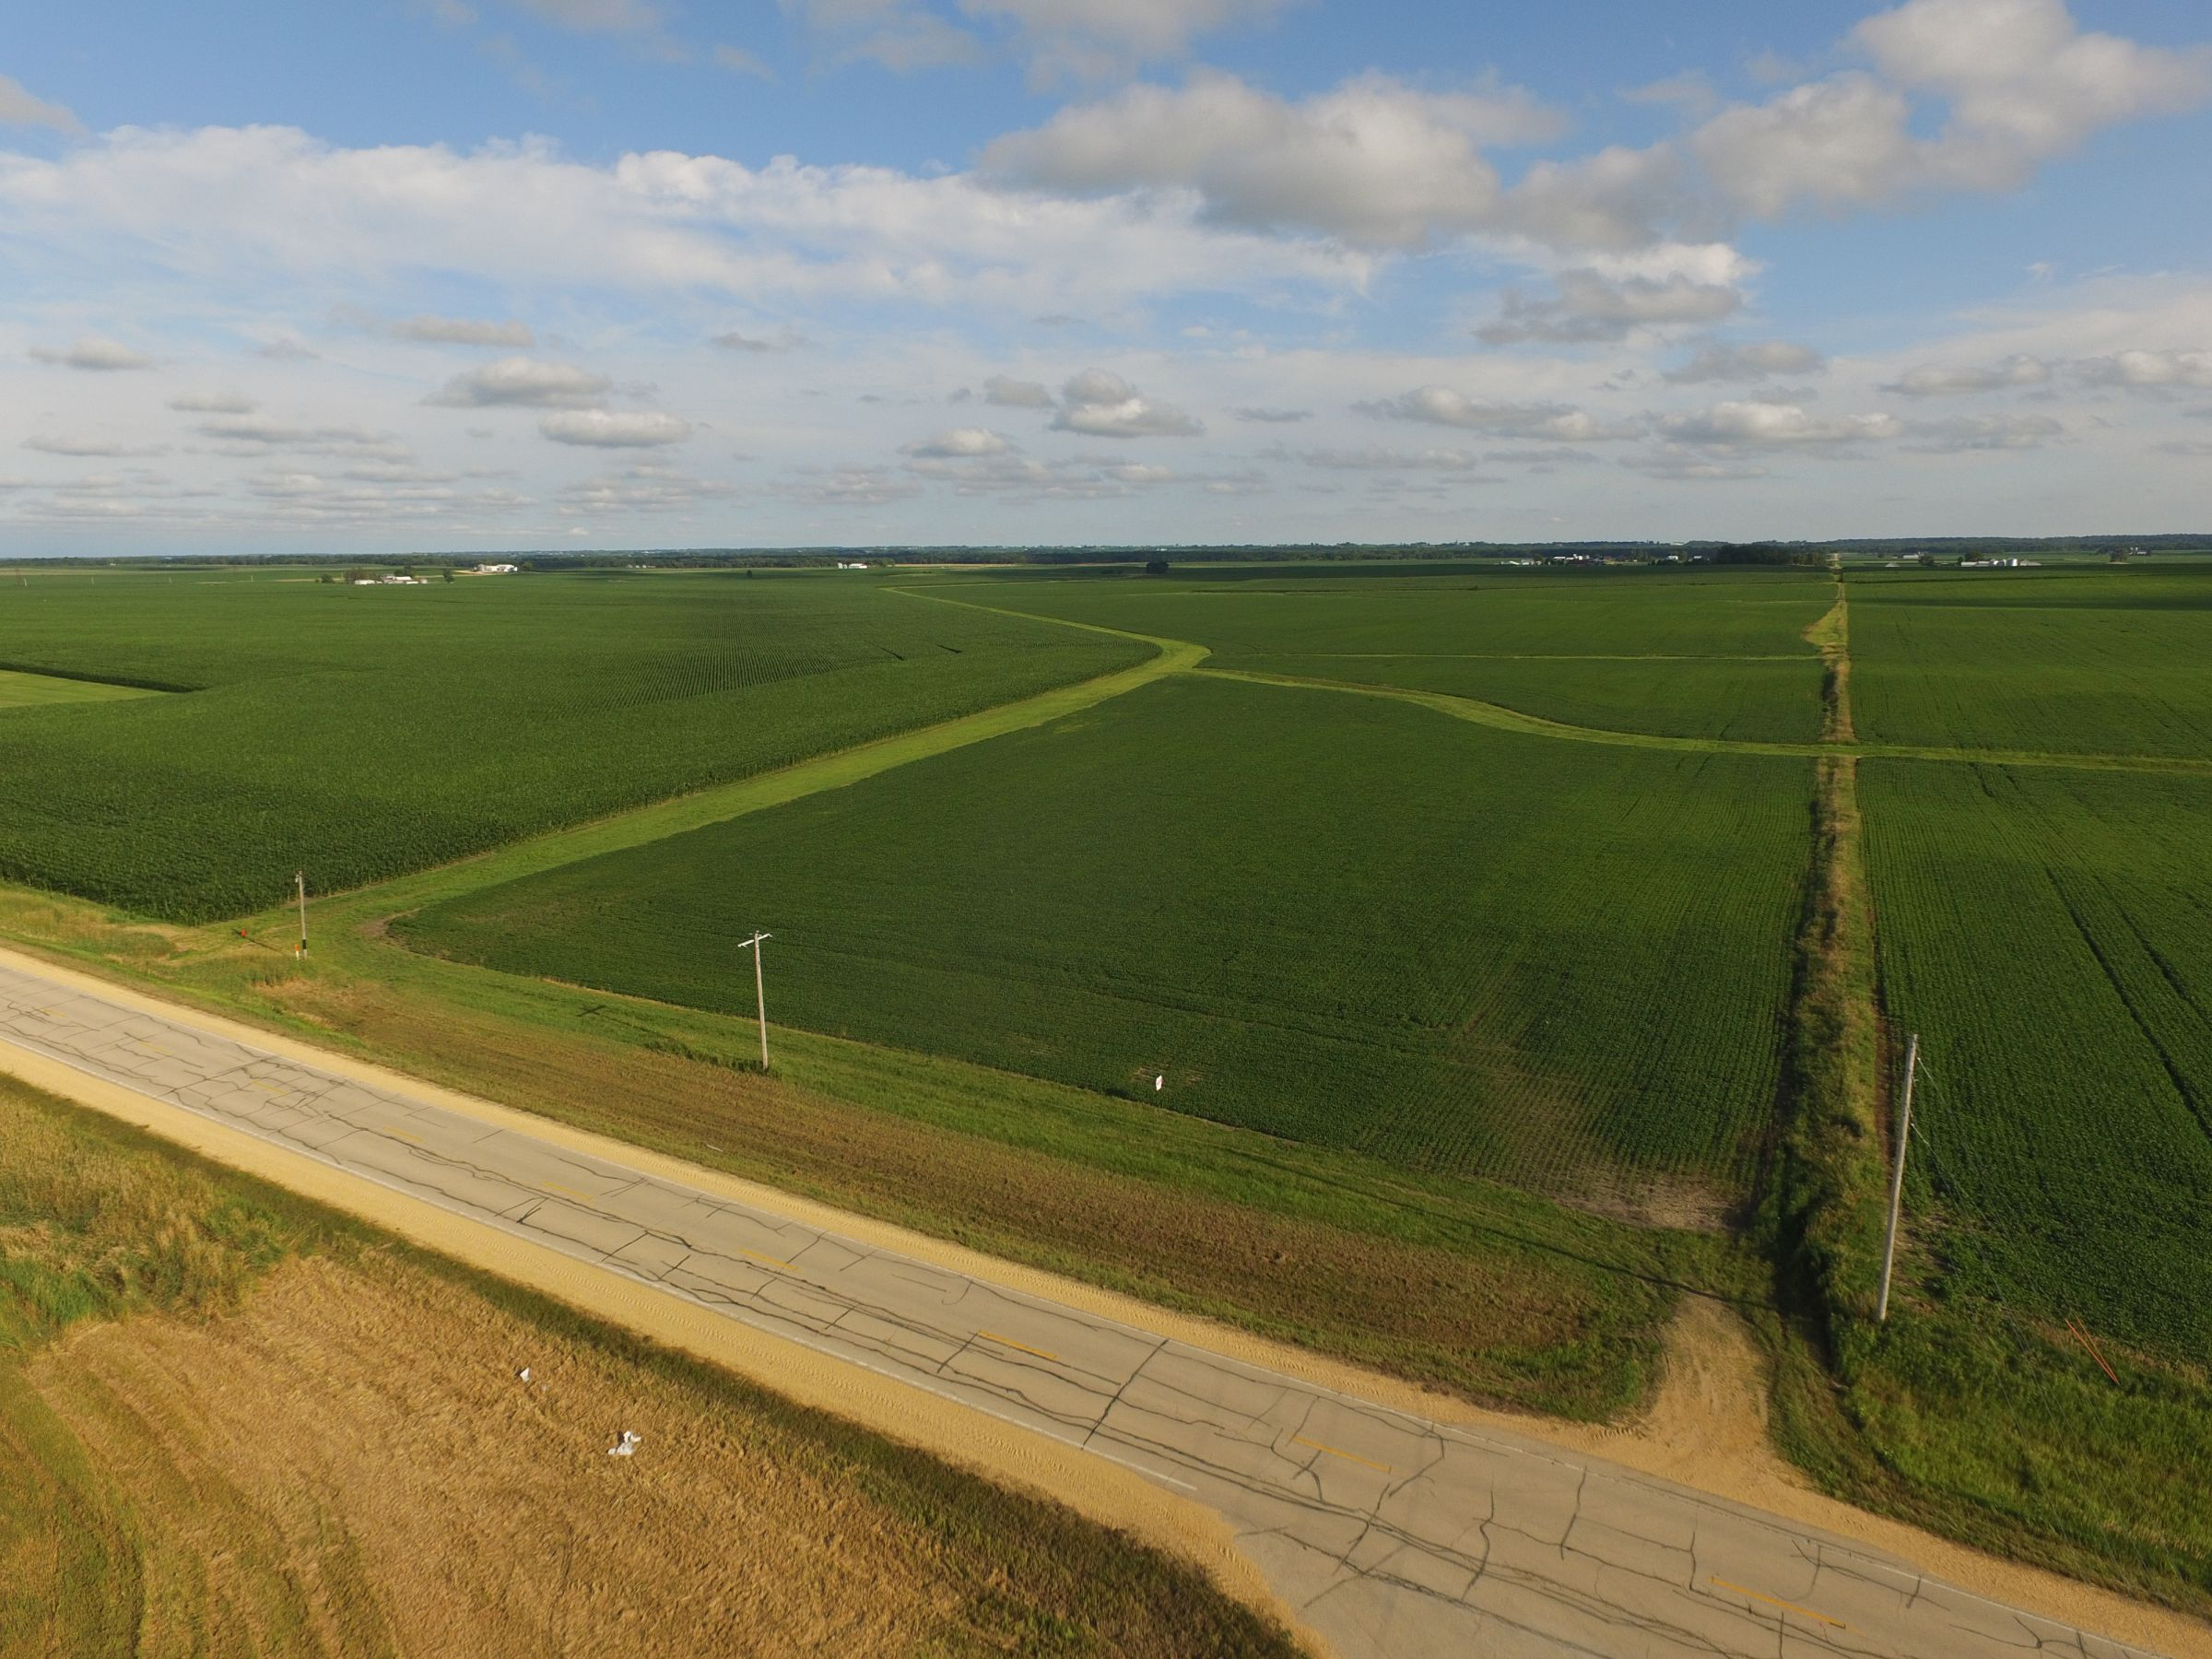 auctions-land-clinton-county-iowa-210-acres-listing-number-15628-2-2021-07-12-143510.JPG